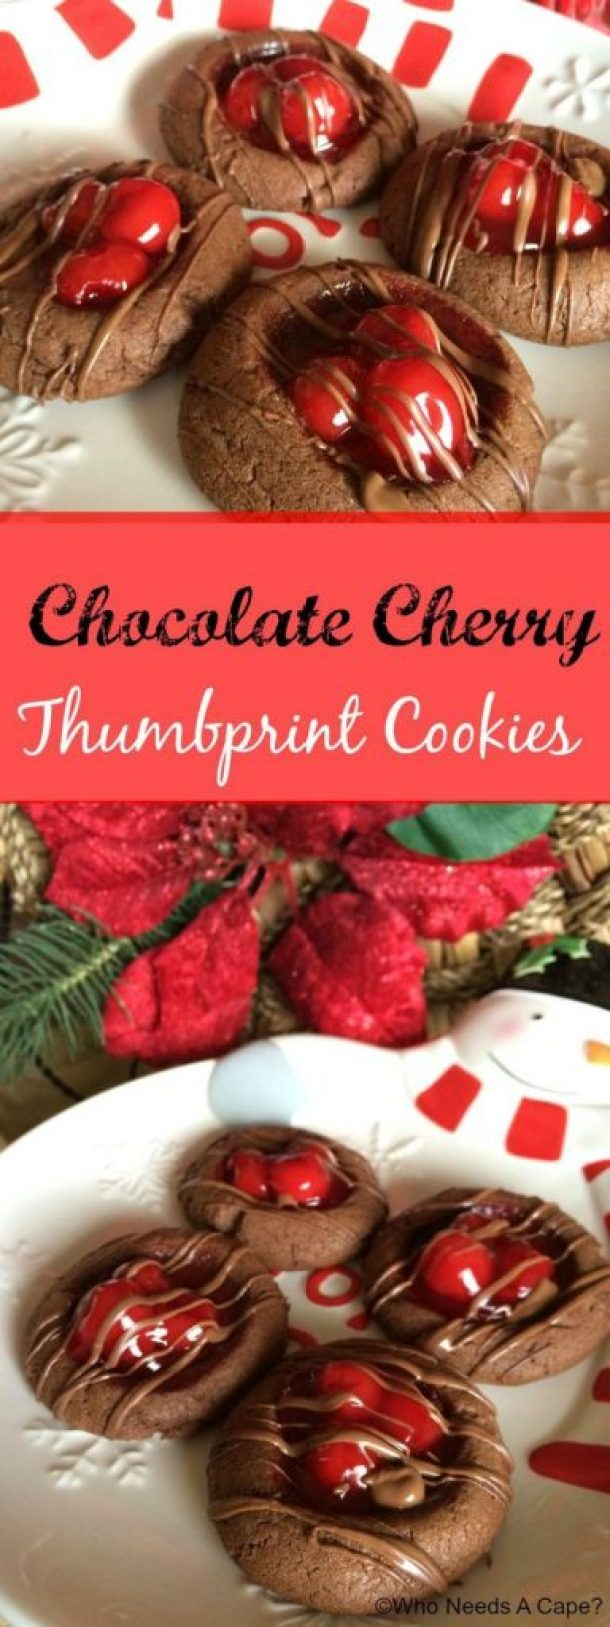 Chocolate Cherry Thumbprint Cookies Recipe | Who Needs a Cape?